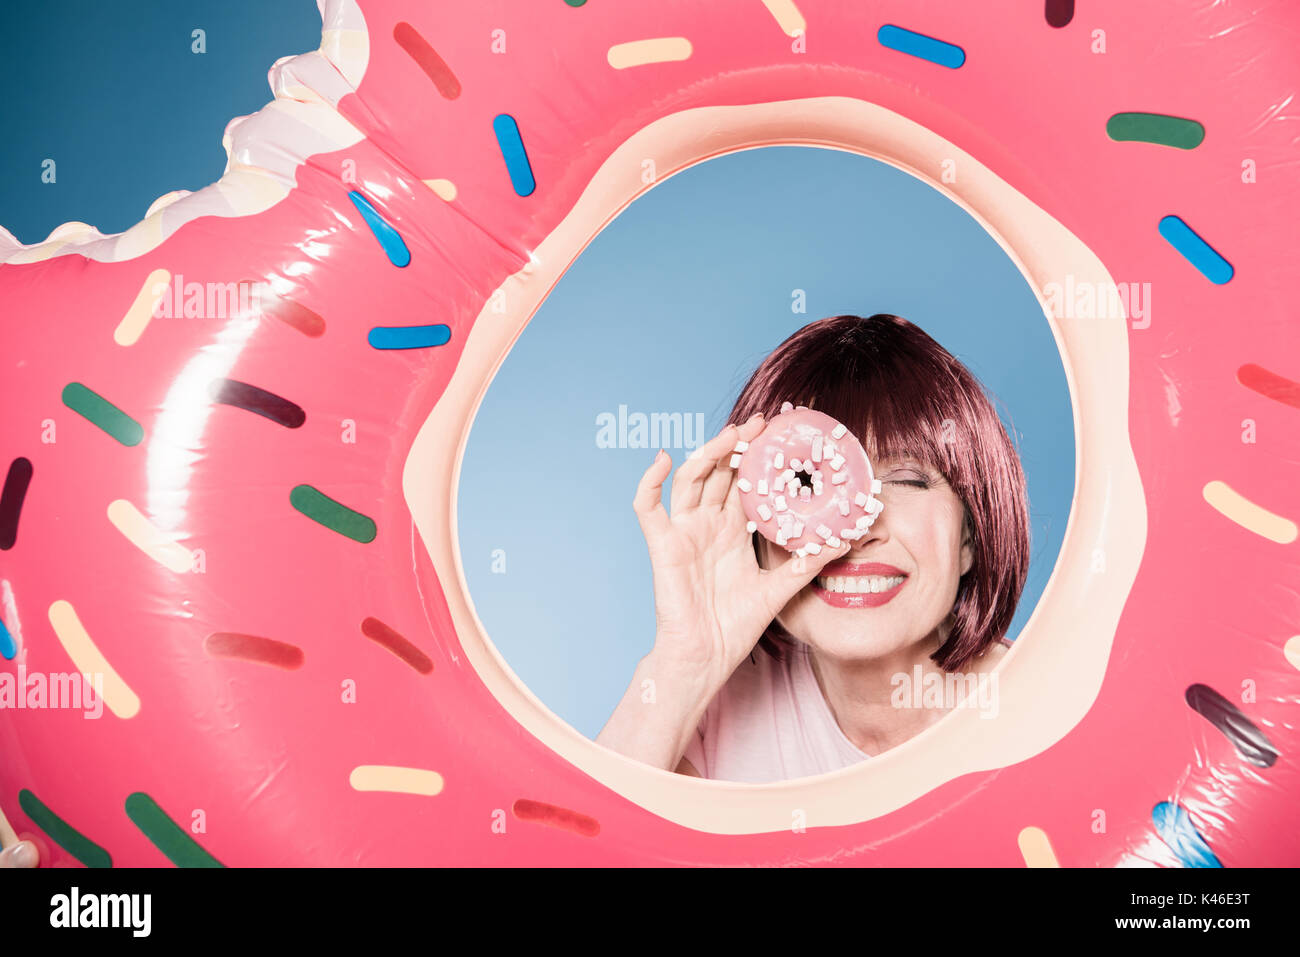 smiling woman holding doughnut in front of eye into swimming tube - Stock Image